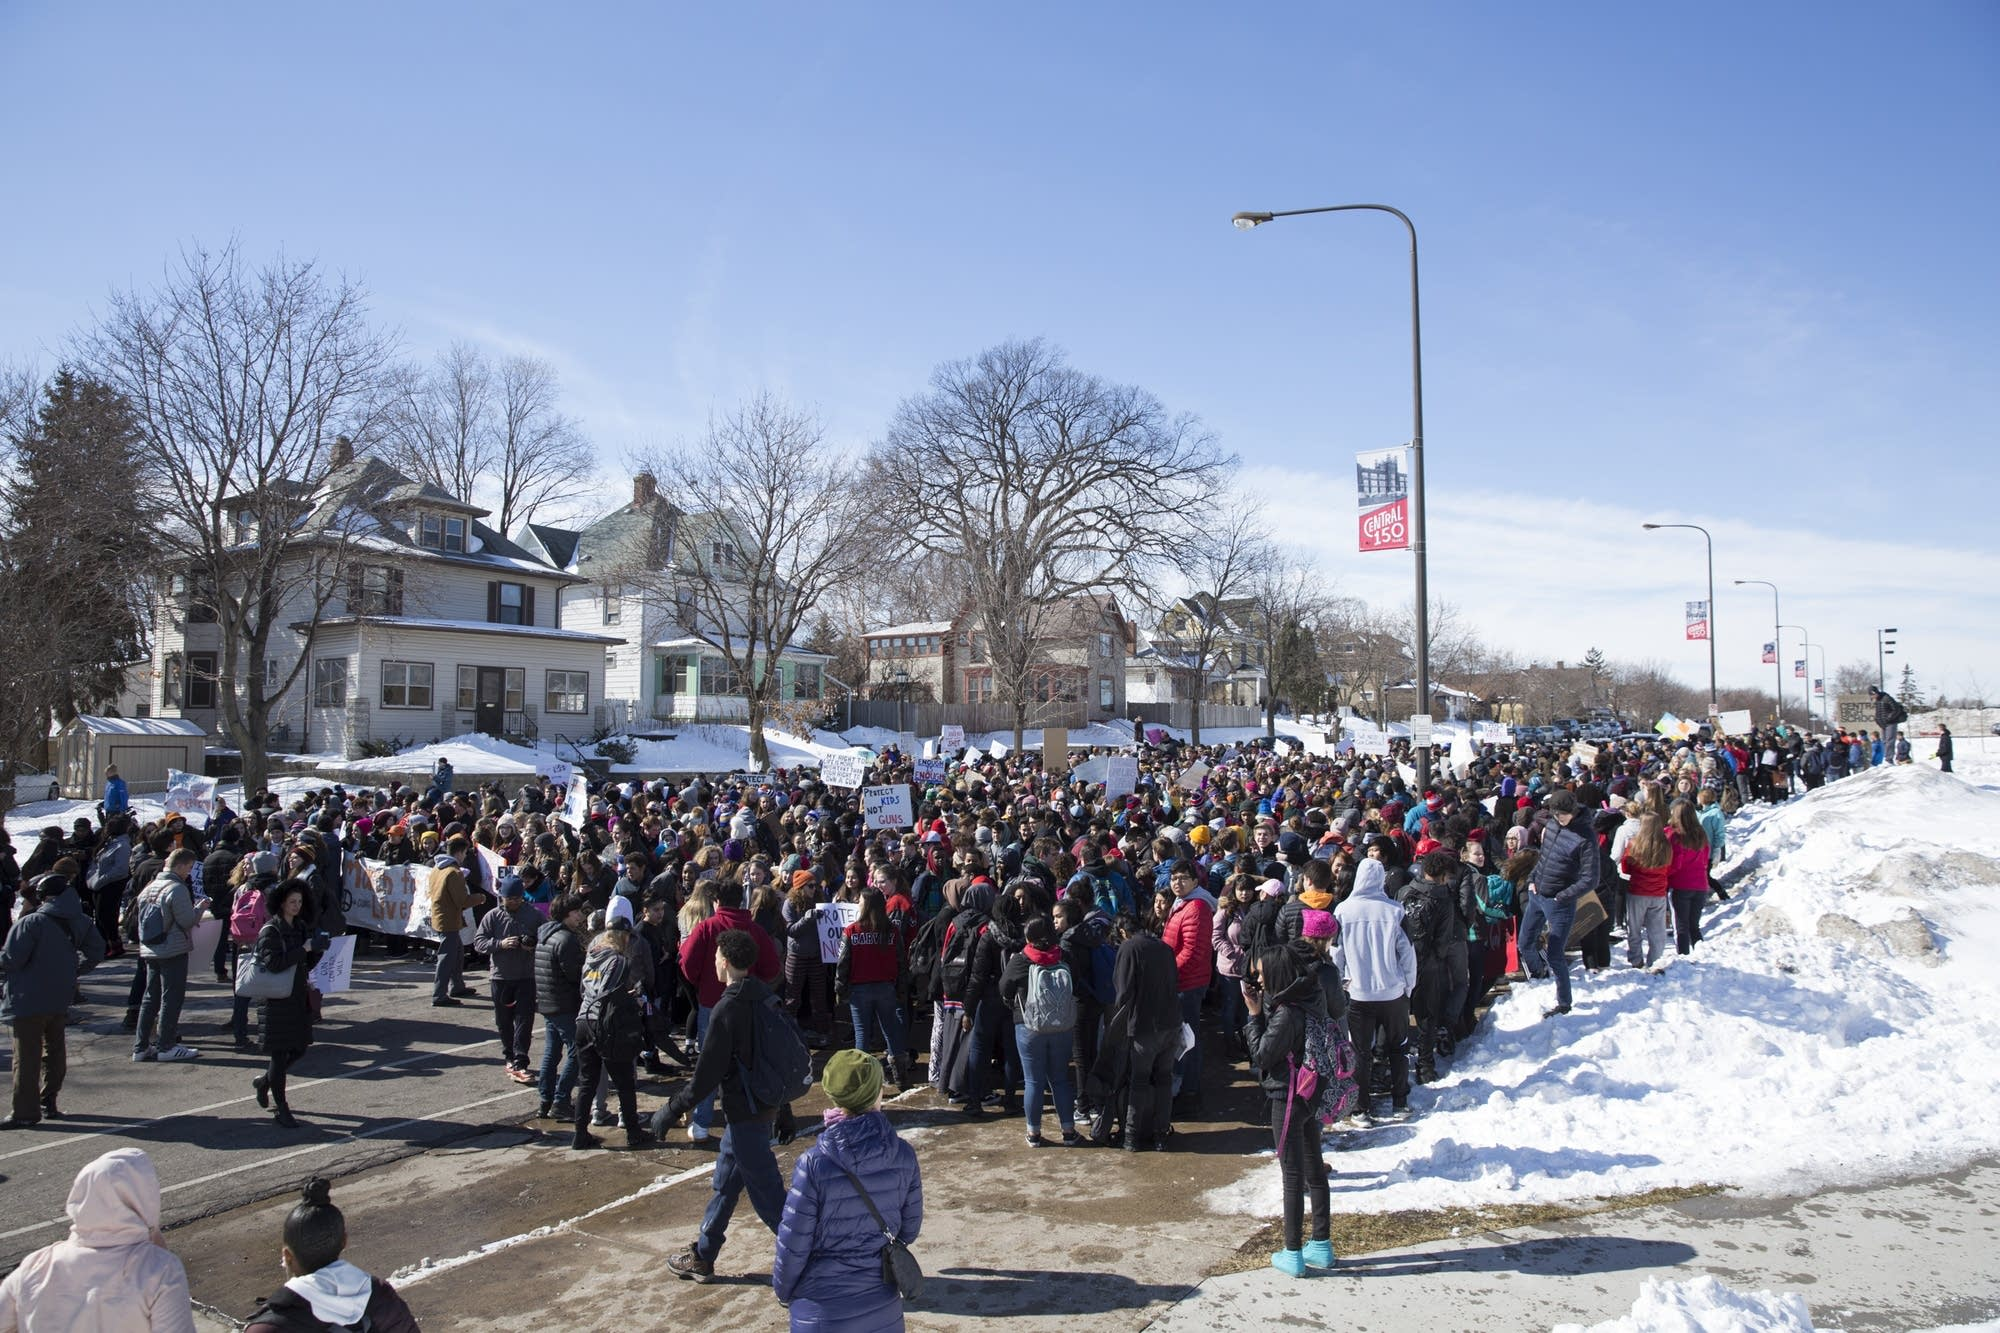 Hundreds of students from Central High School and others gather